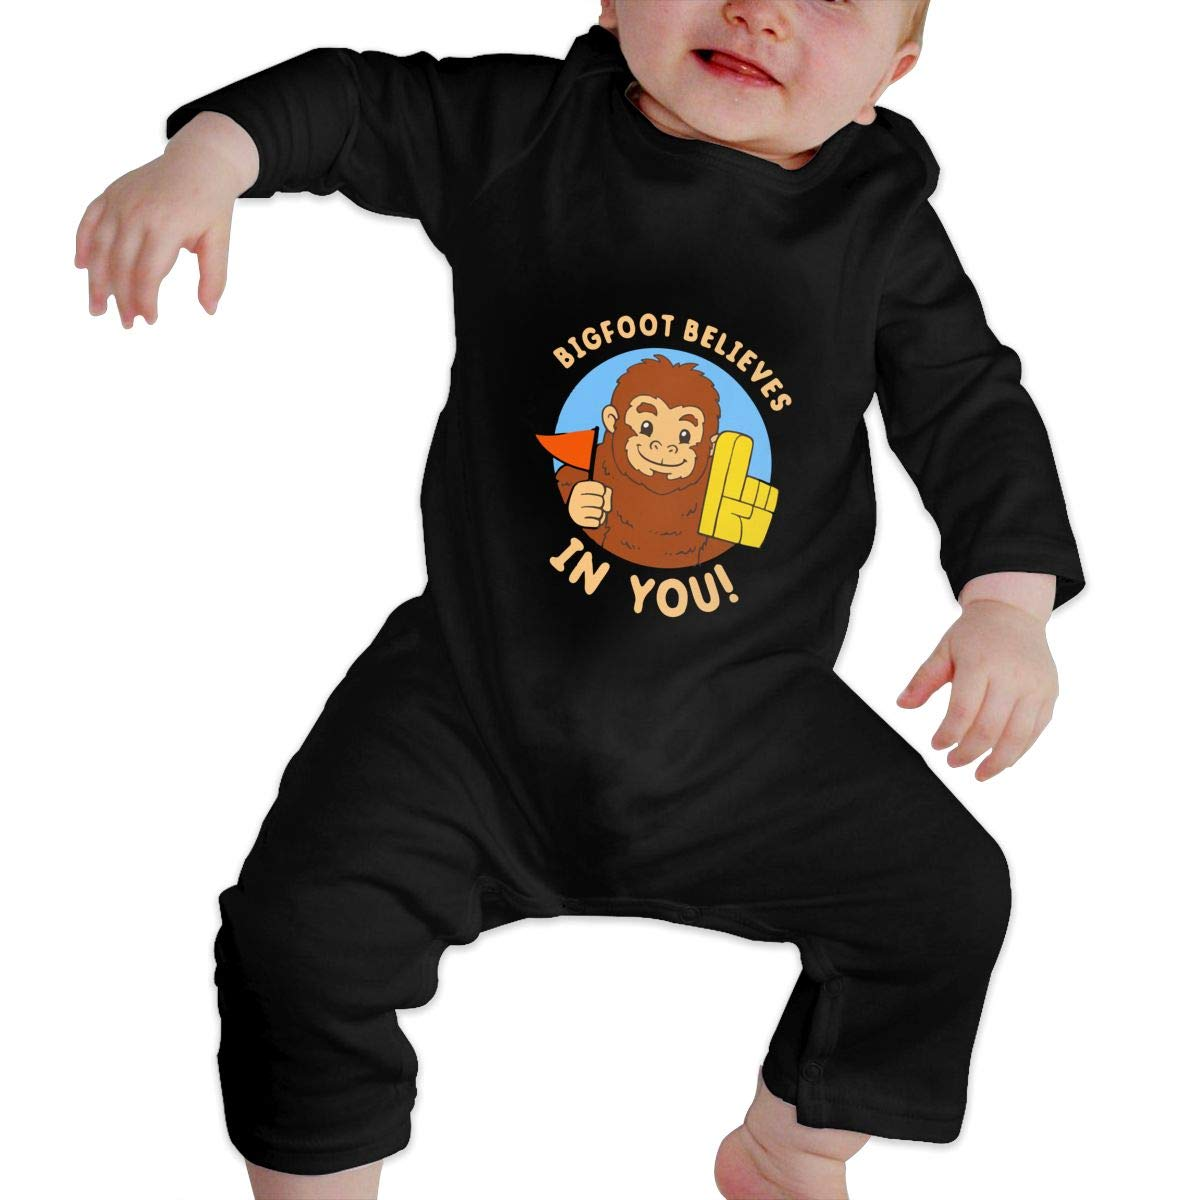 Suit 6-24 Months Black Toddler Round Collar Bigfoot Believes in You Long Sleeve Playsuit 100/% Cotton